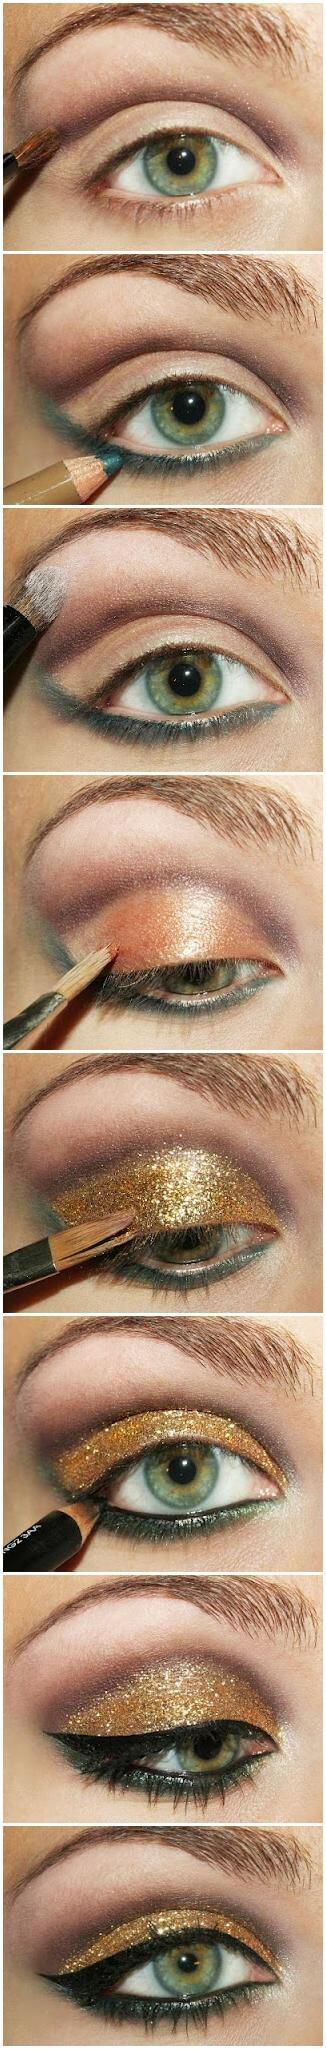 Eyes with gold and brown shimmery eyeshadow and eyeliner